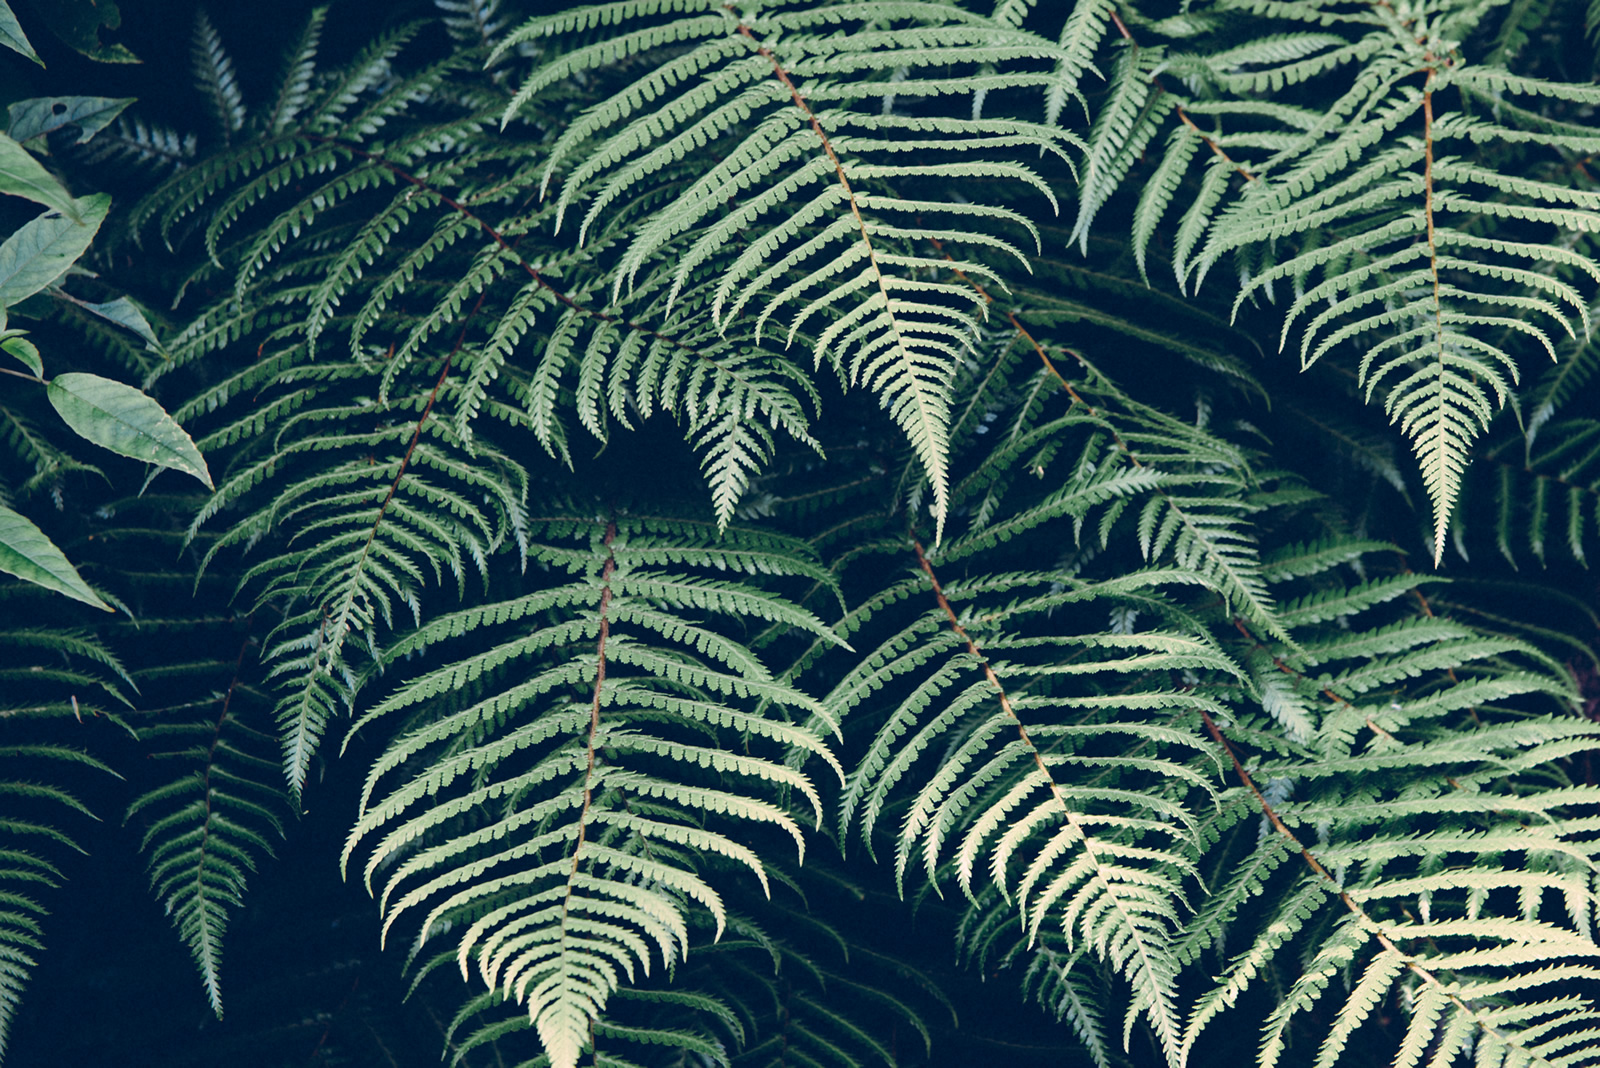 A close-up of green fern leaves